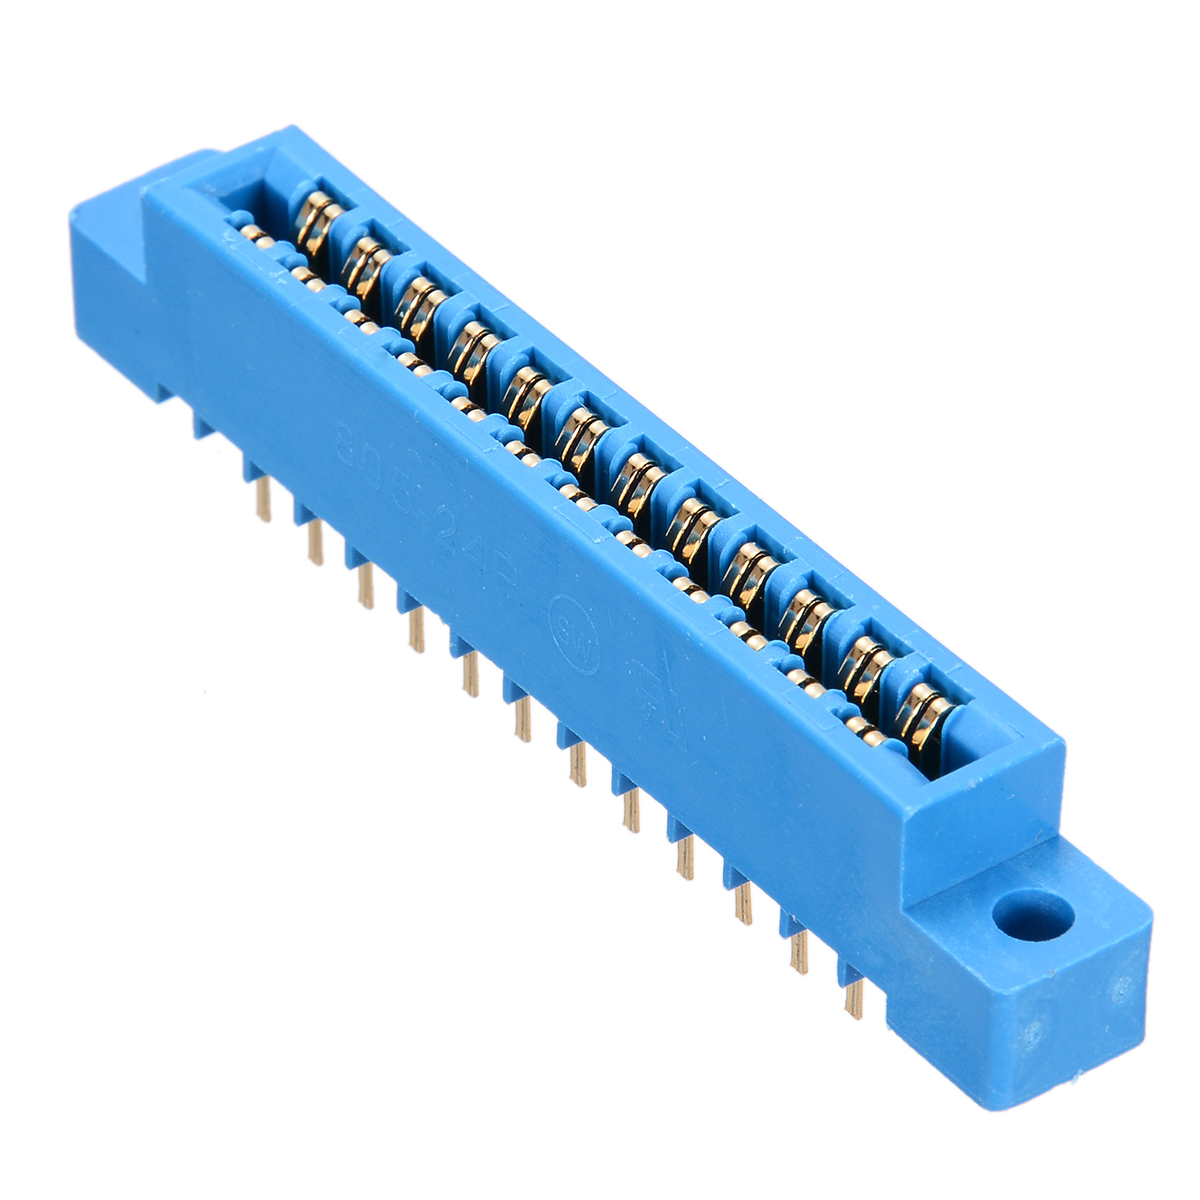 1pc Card Edge Connector 3.96mm Pitch Cutting Dies PCB Slot 2x6 Row 12 Pin Solder Socket Wire Solder Type 805 Series